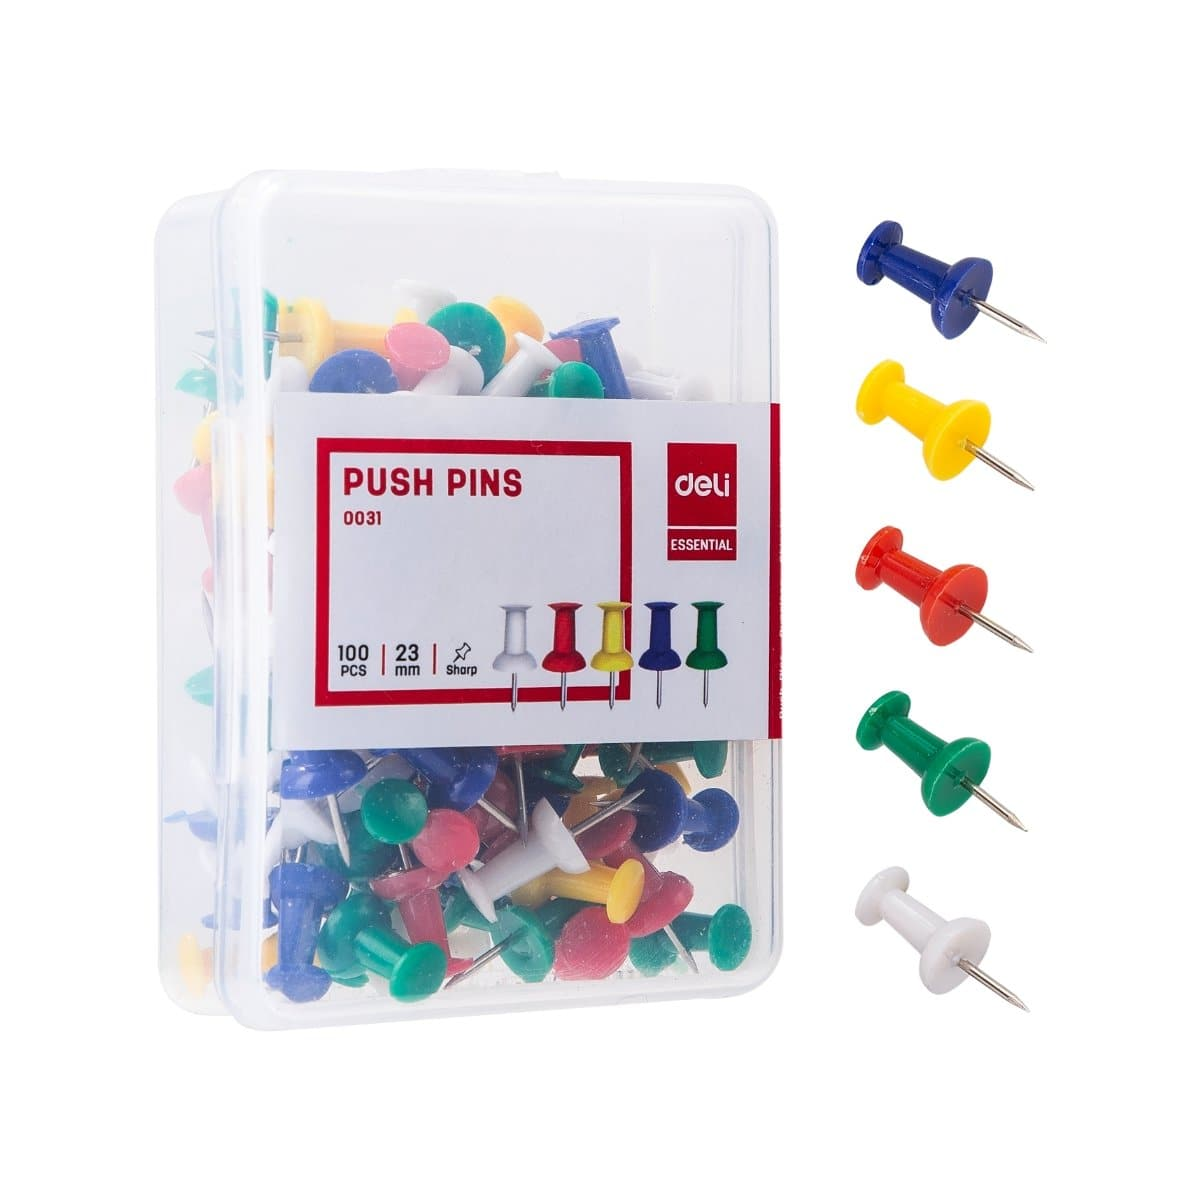 deli Push Pins, 100/pack, Assorted Colors